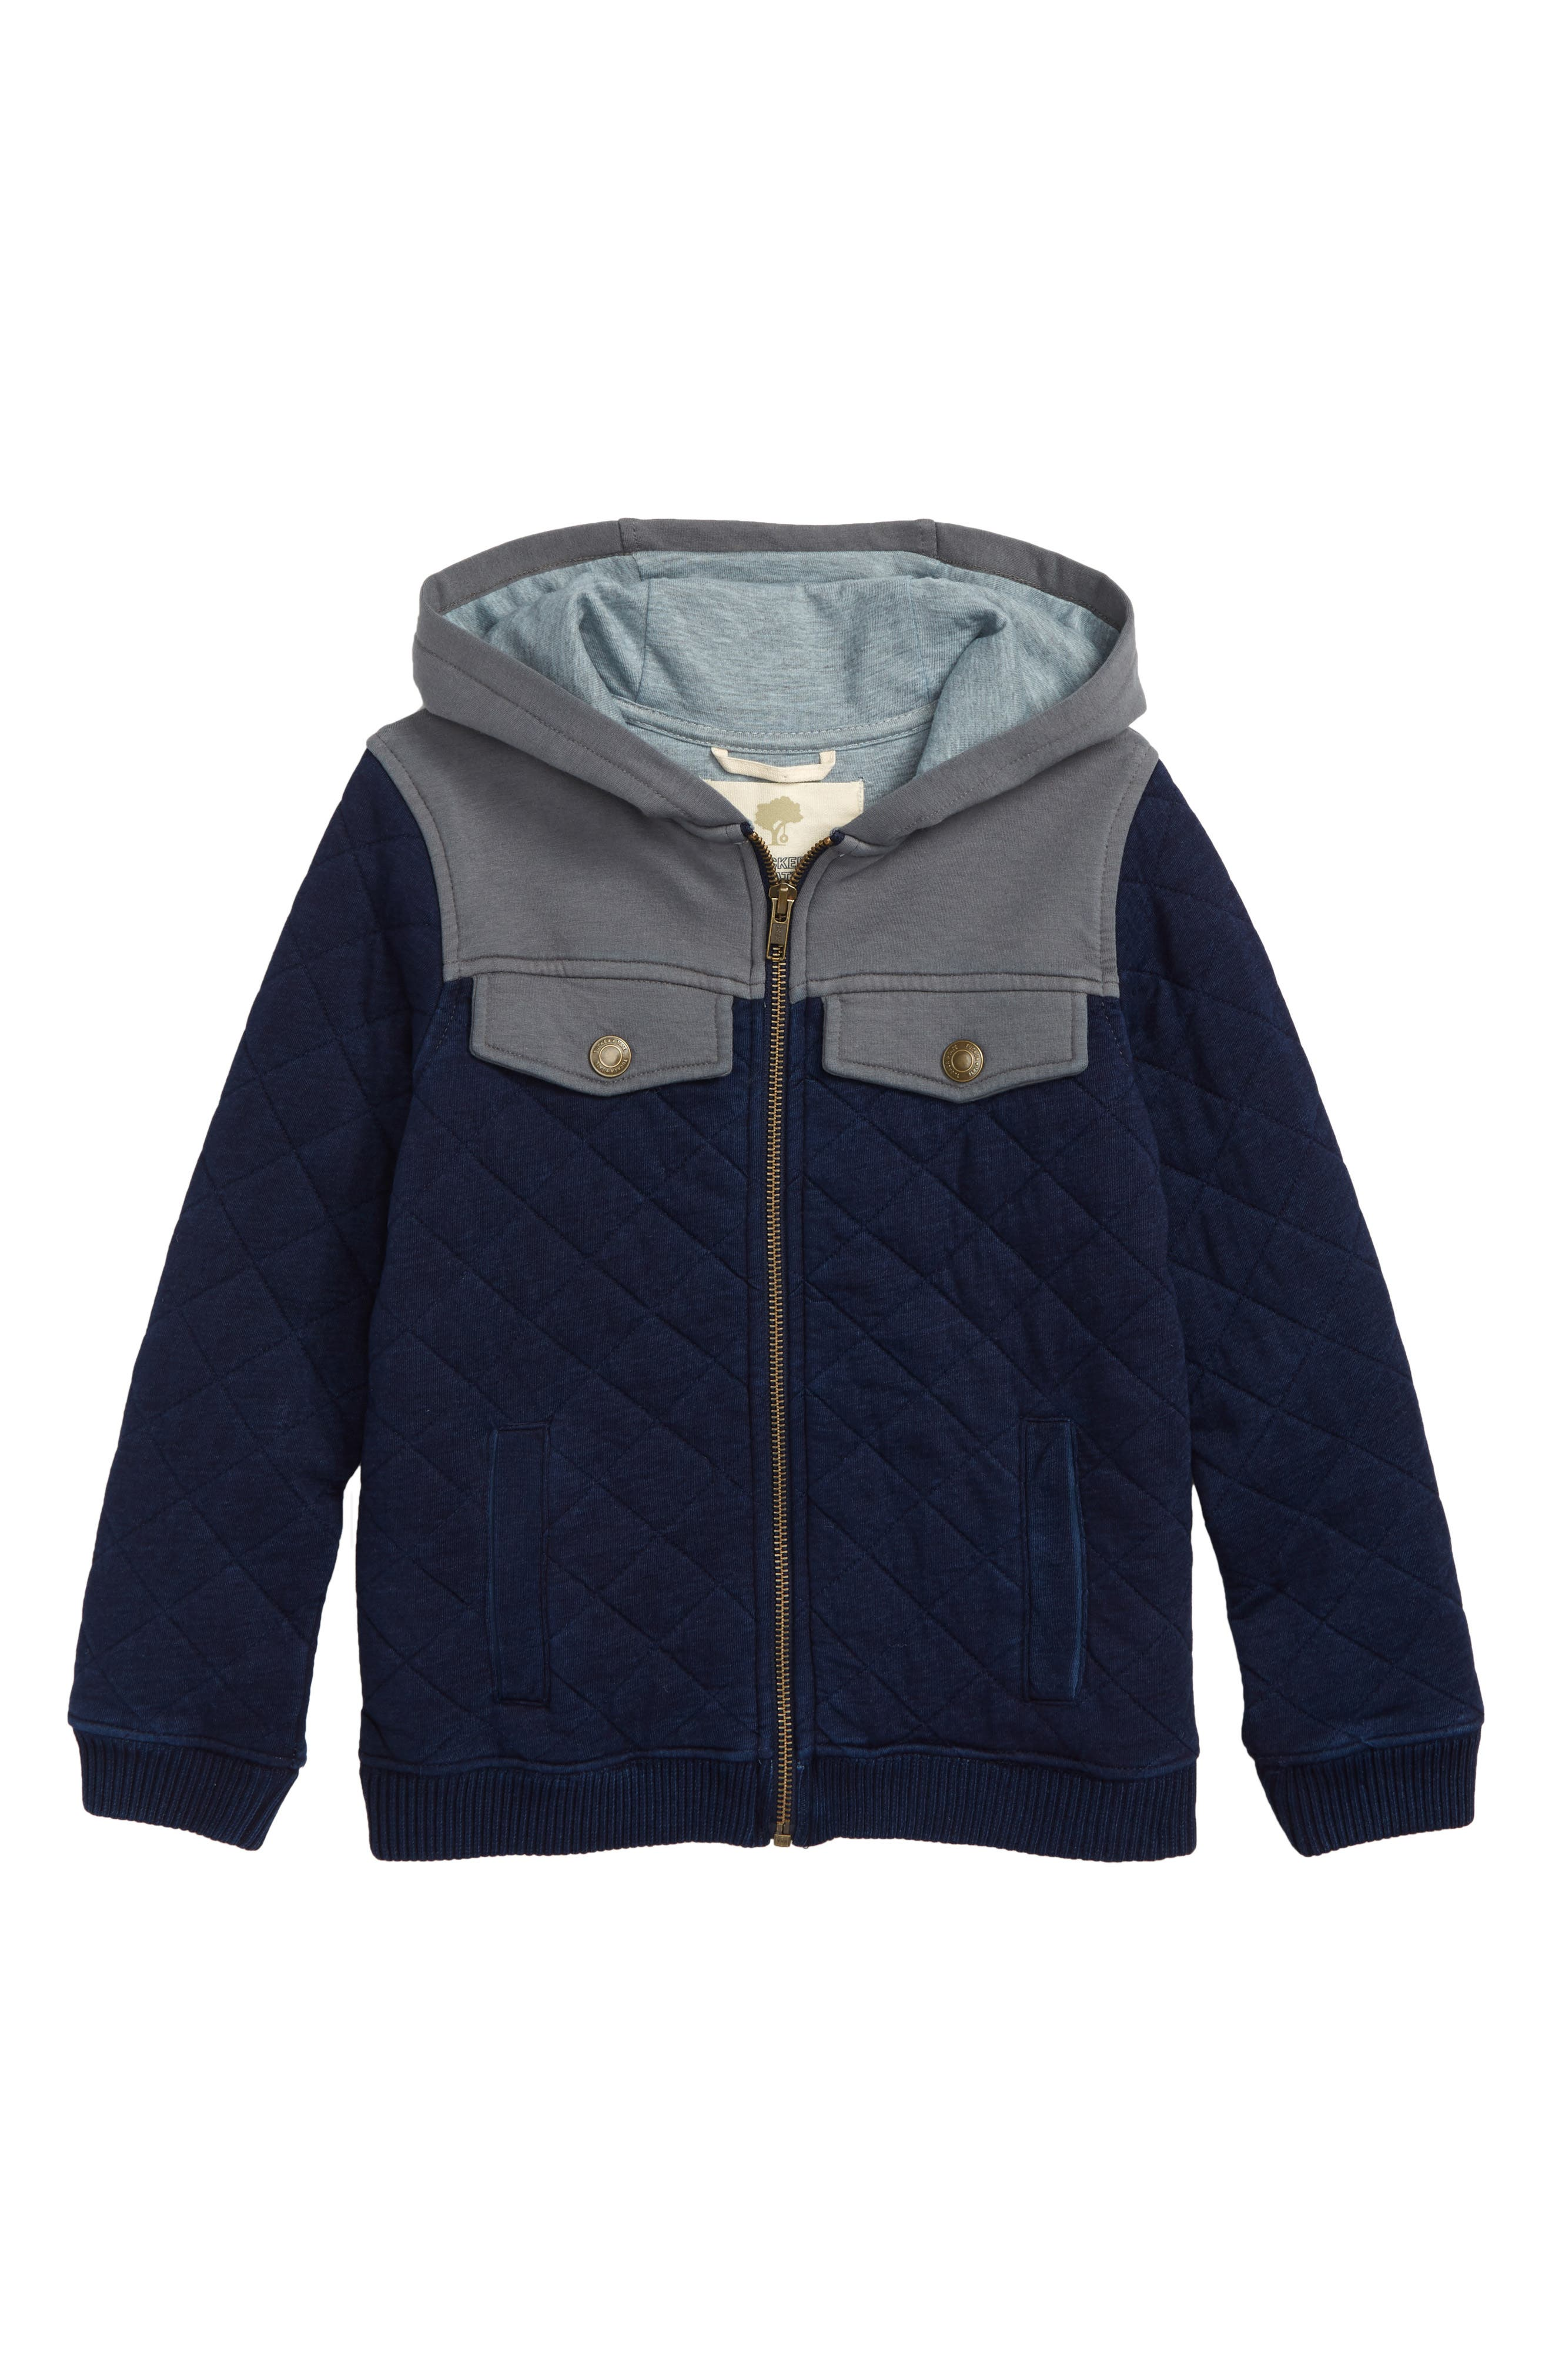 TUCKER + TATE,                             Quilted Zip Hoodie,                             Main thumbnail 1, color,                             410